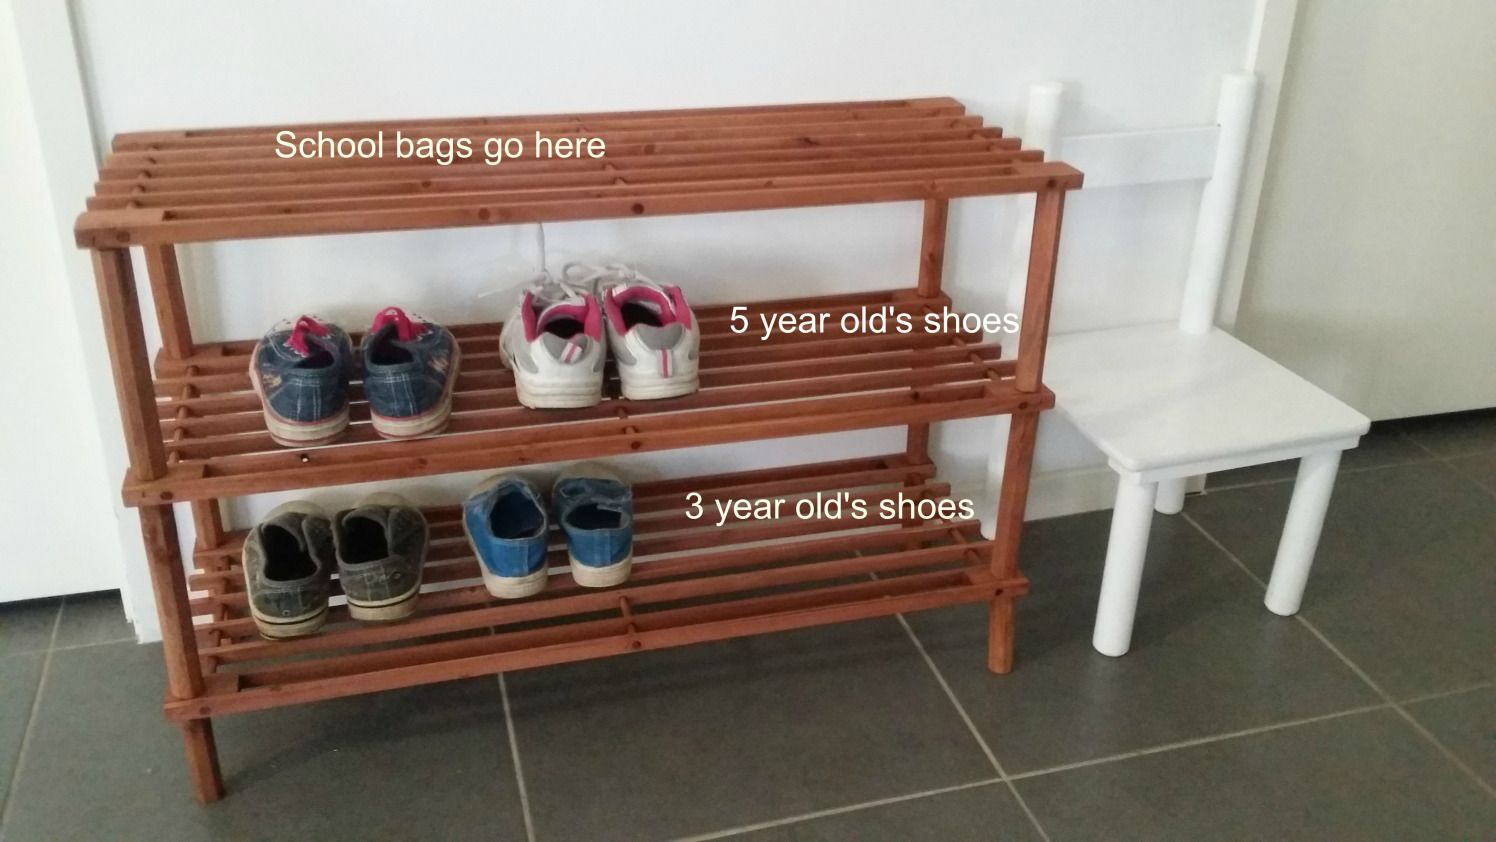 Care Of Self Spaces A Change To My Children S Shoe Storage Area Diy Classroom Montessori Parenting Montessori Classroom